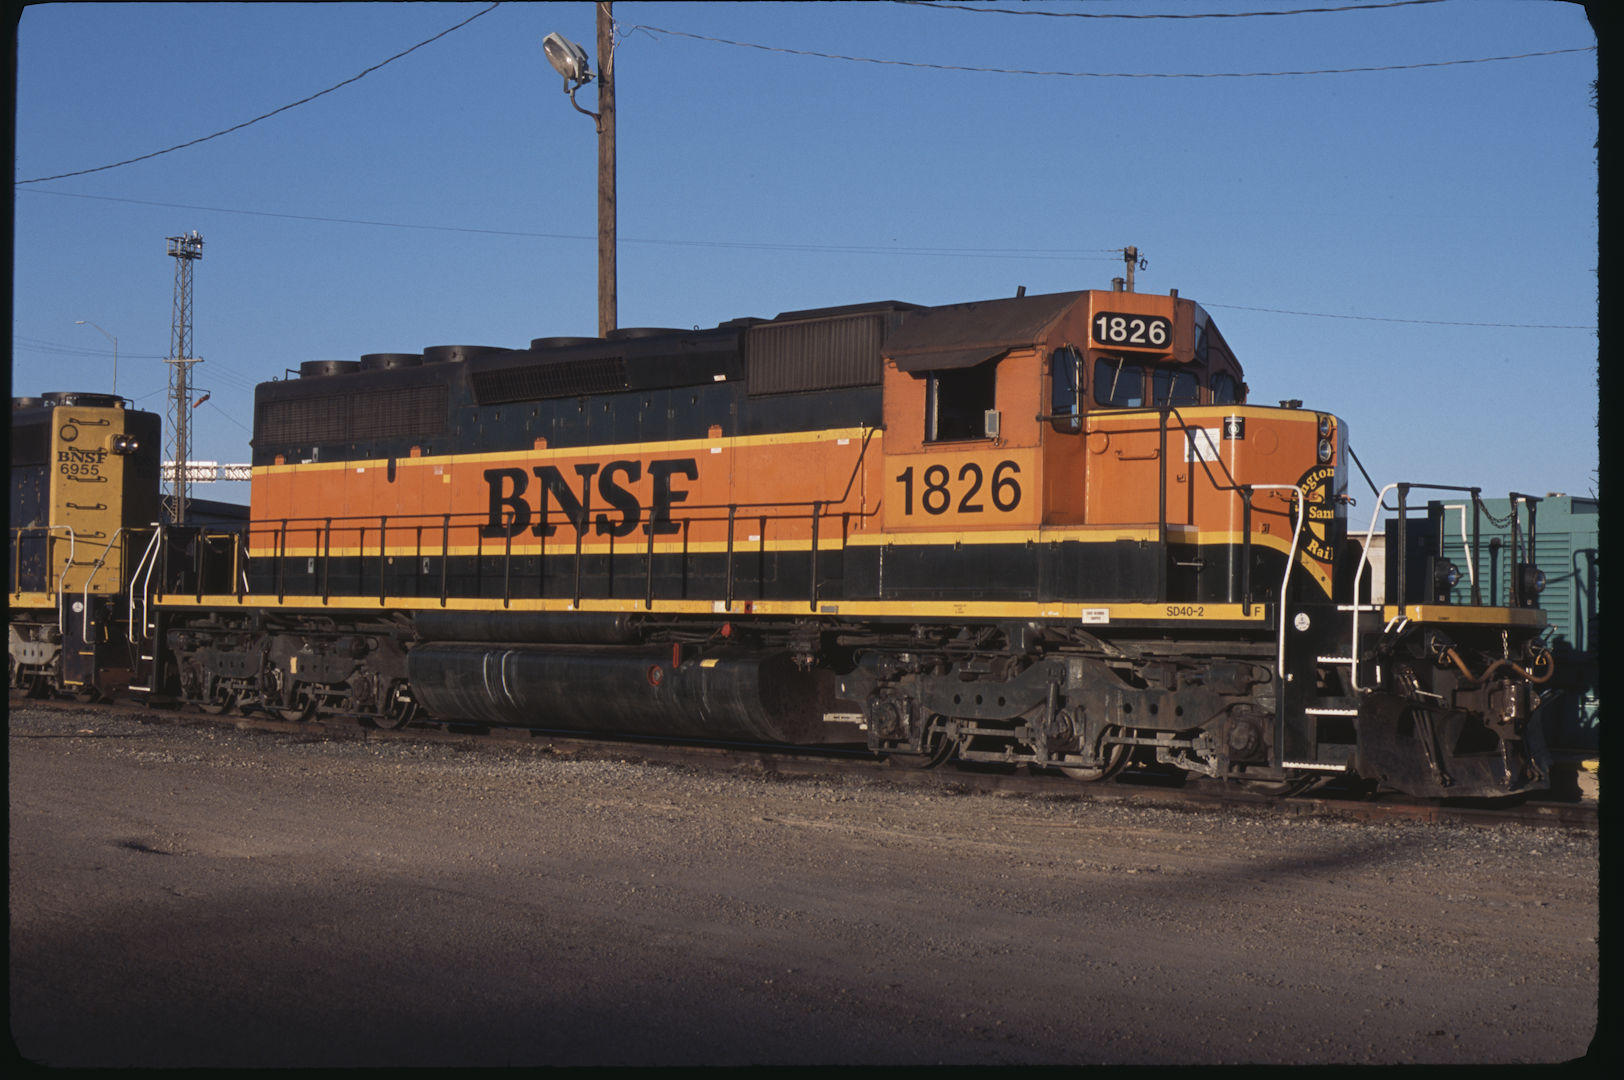 burlington northern railroad santa fe Burlington northern santa fe is another class i railroad that provides web-based tools for rail shippers and receivers to track their shipments they package their railcar tracking tools into what is called bnsfcom you can plan a shipment, get pricing, bill a shipment and pay for a shipment here, but this article focuses on the [.